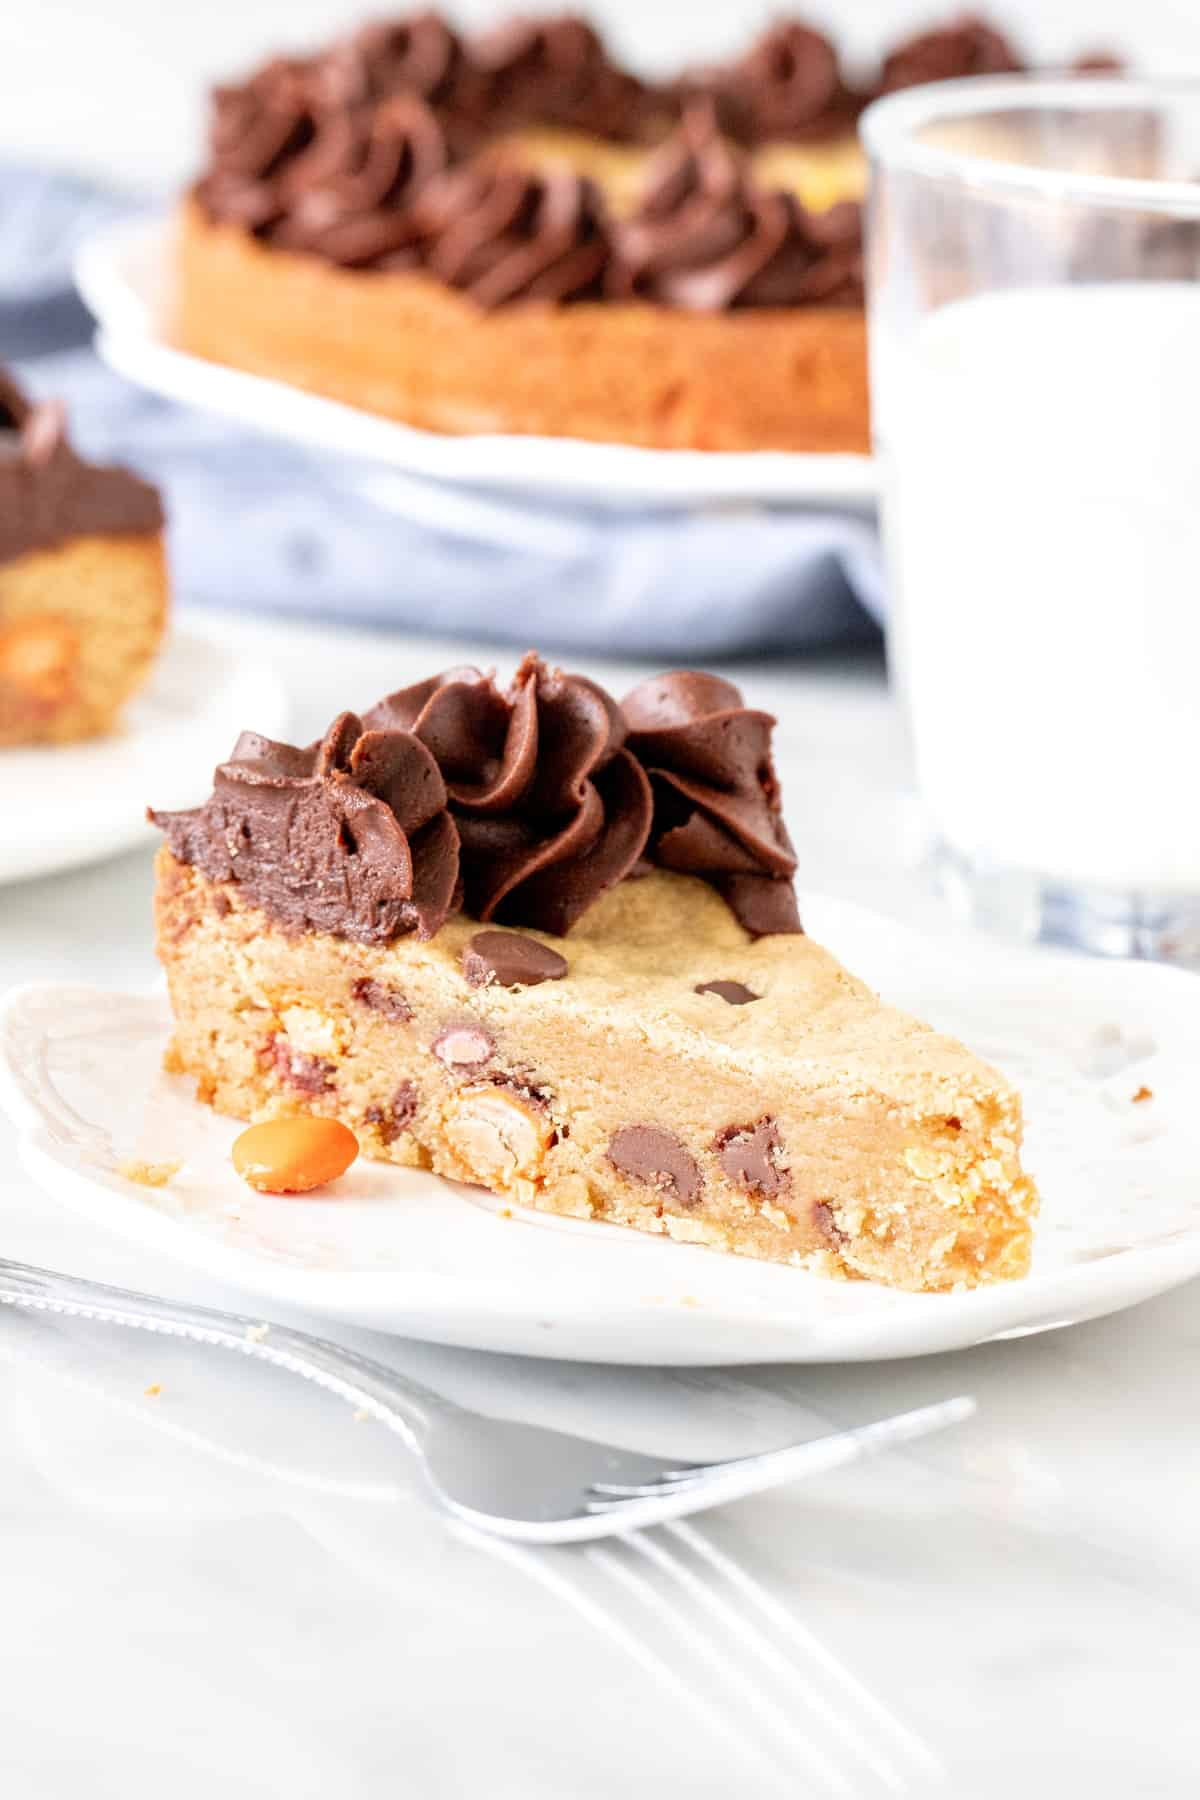 Slice of peanut butter cookie cake with peanut butter frosting